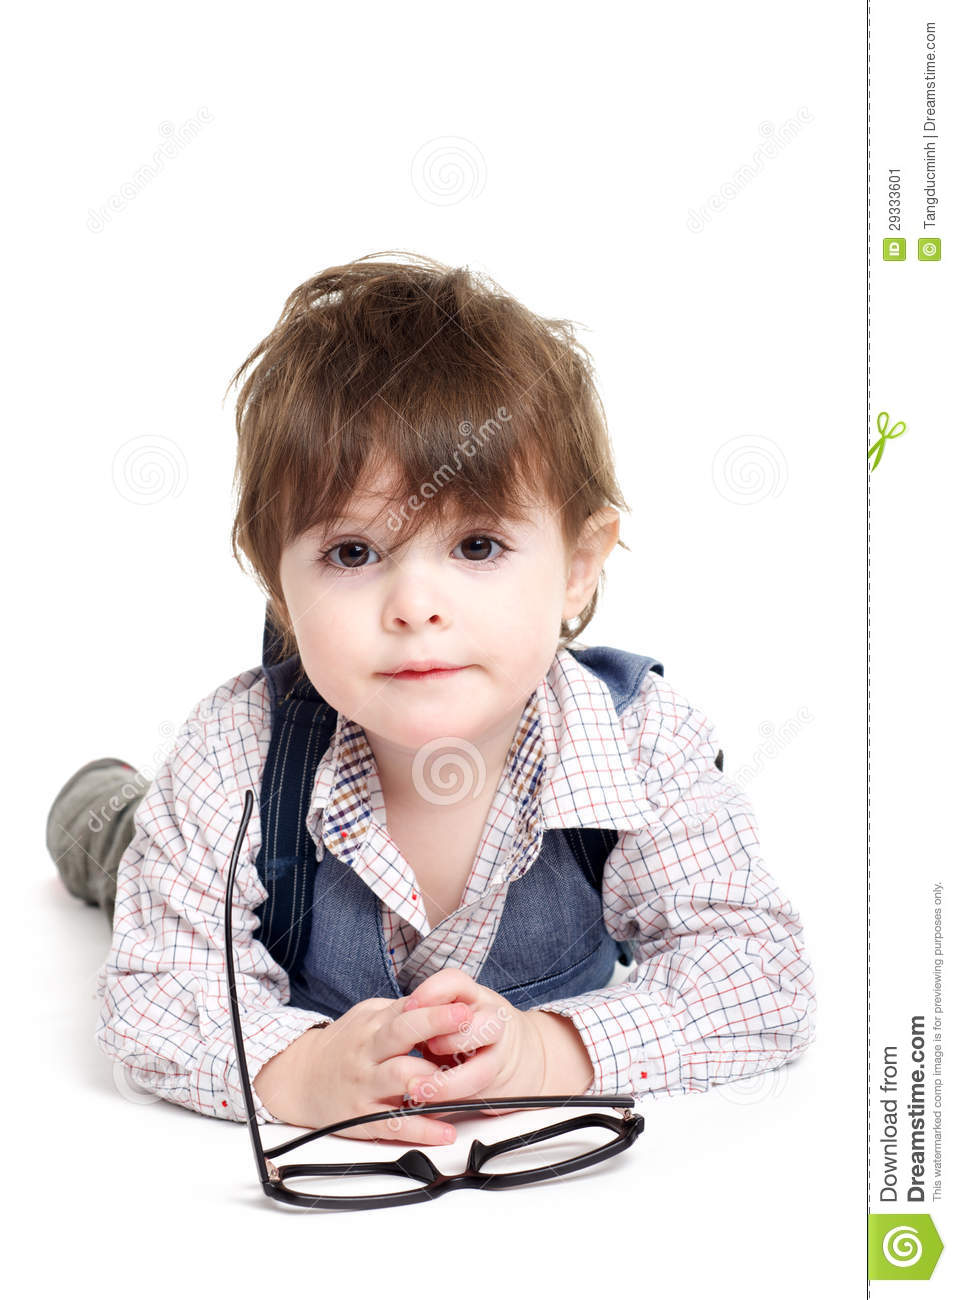 Cute Smart Baby Kid With Glasses Stock Image - Image: 29333601